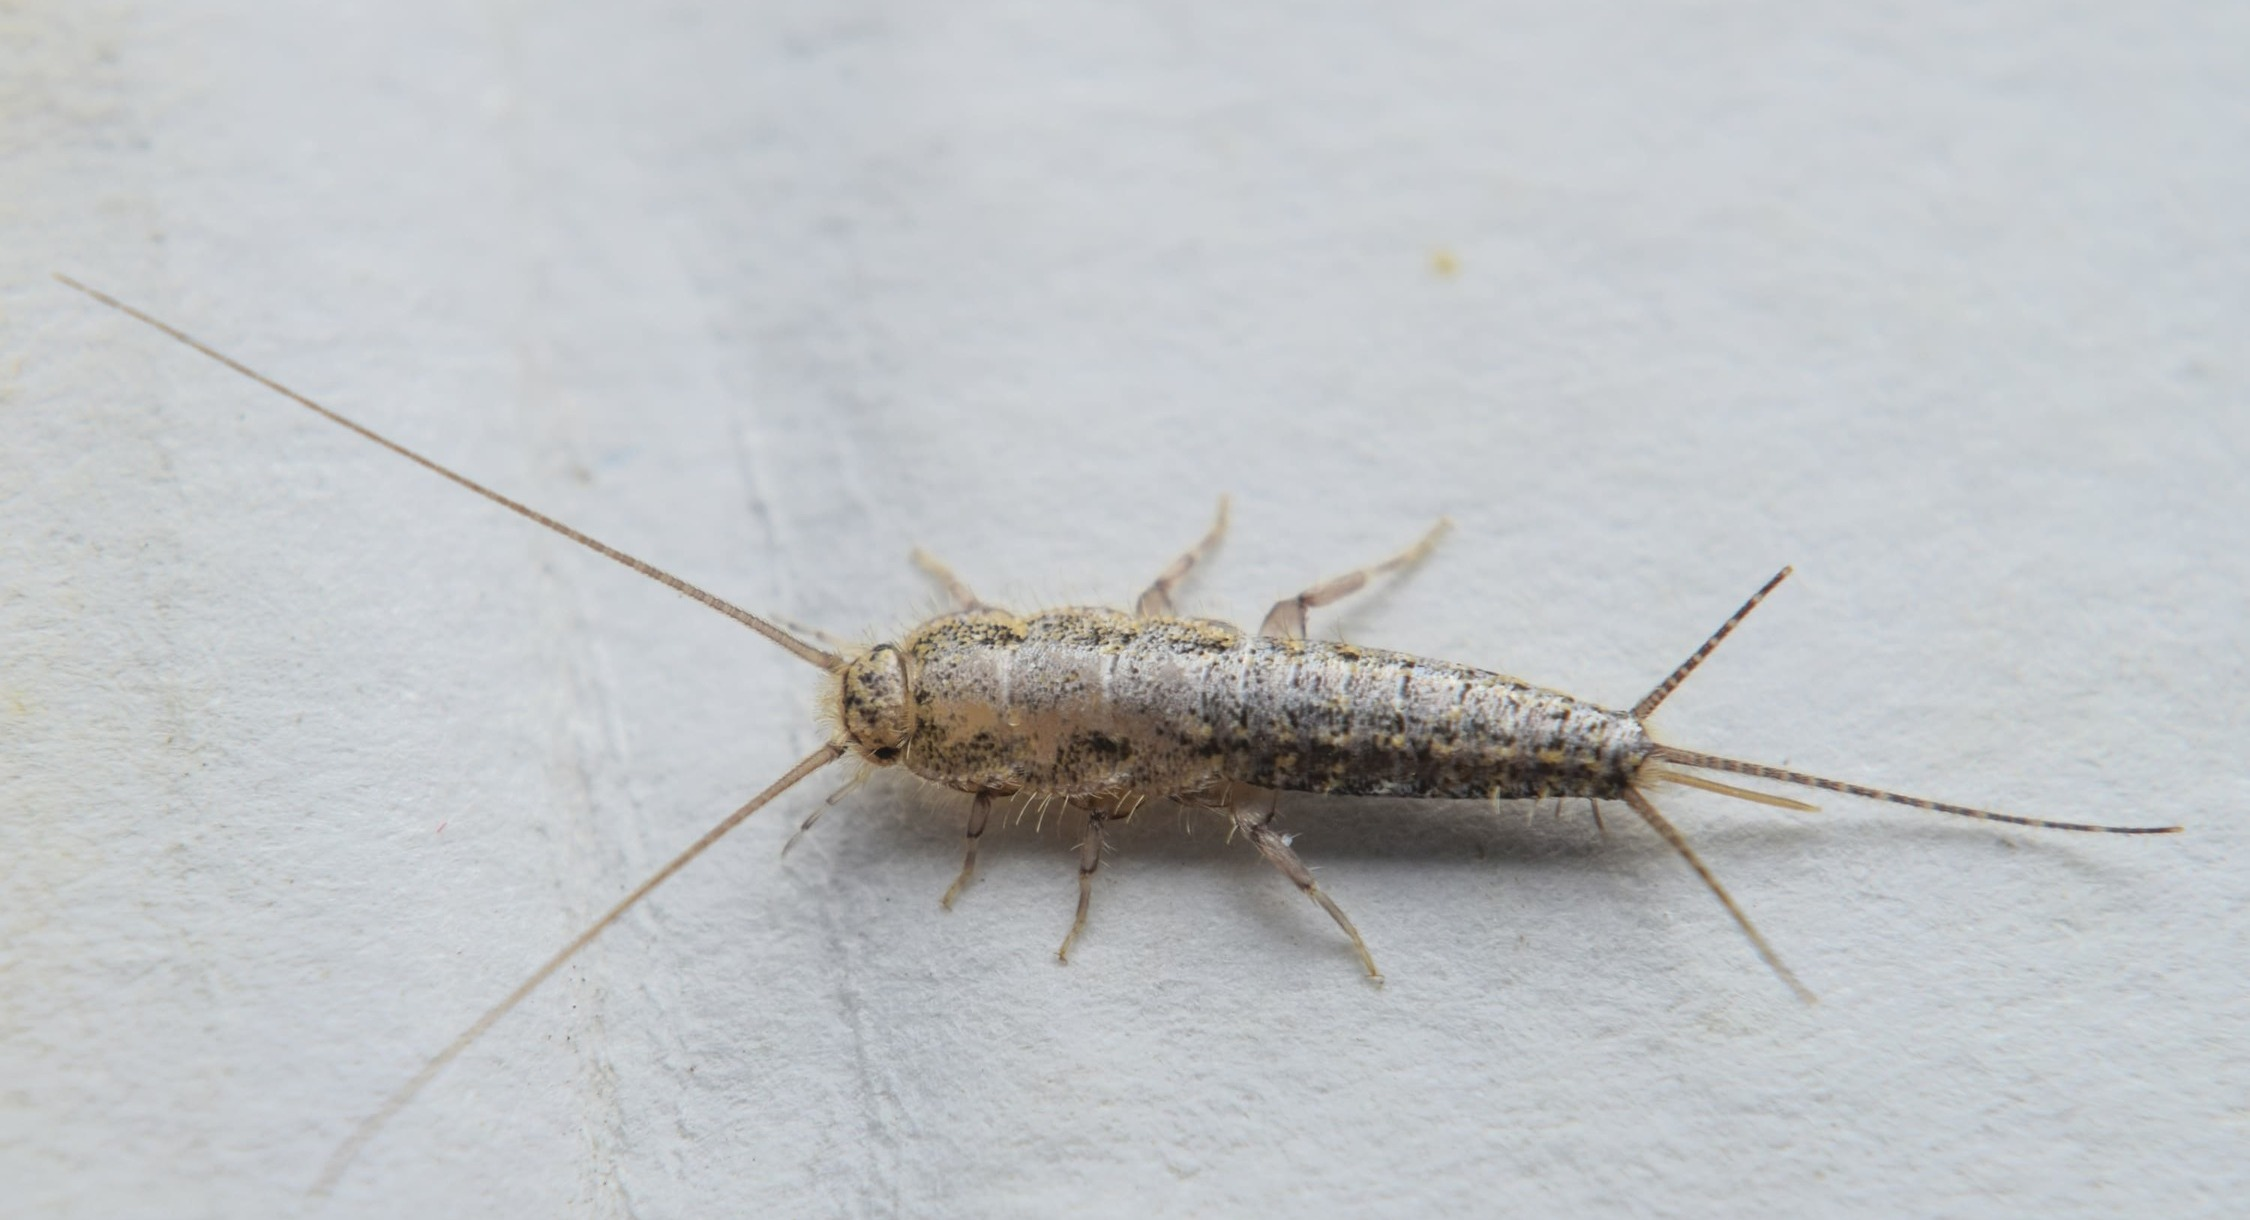 Disposal of silverfish